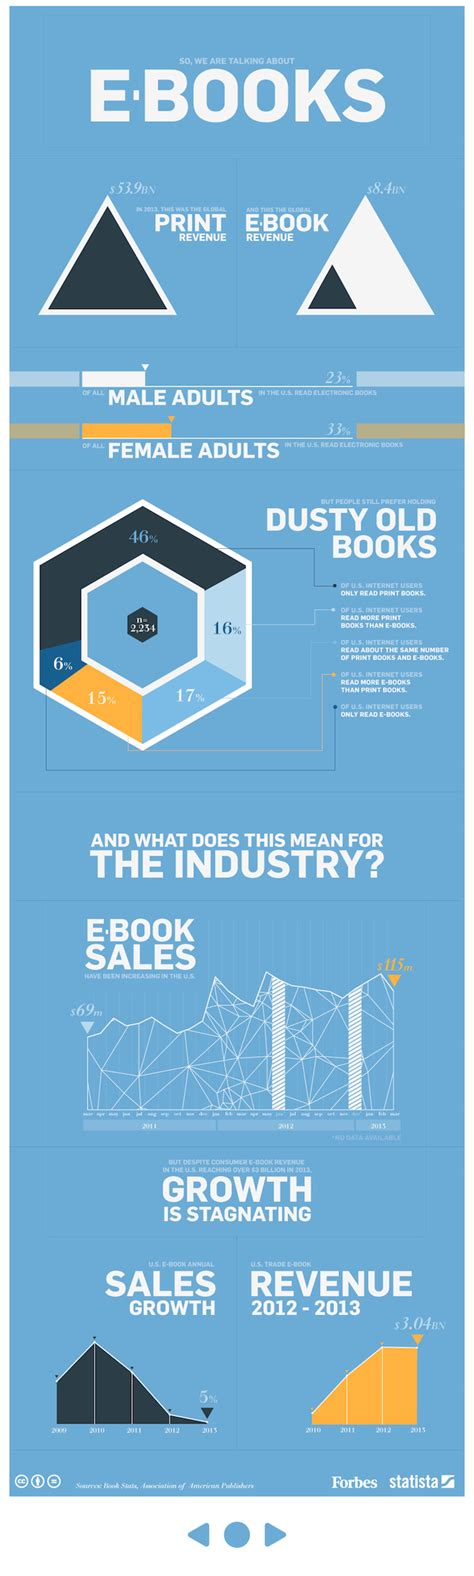 Ebook Statistics 6 paper book vs ebook industry statistics don t burn those